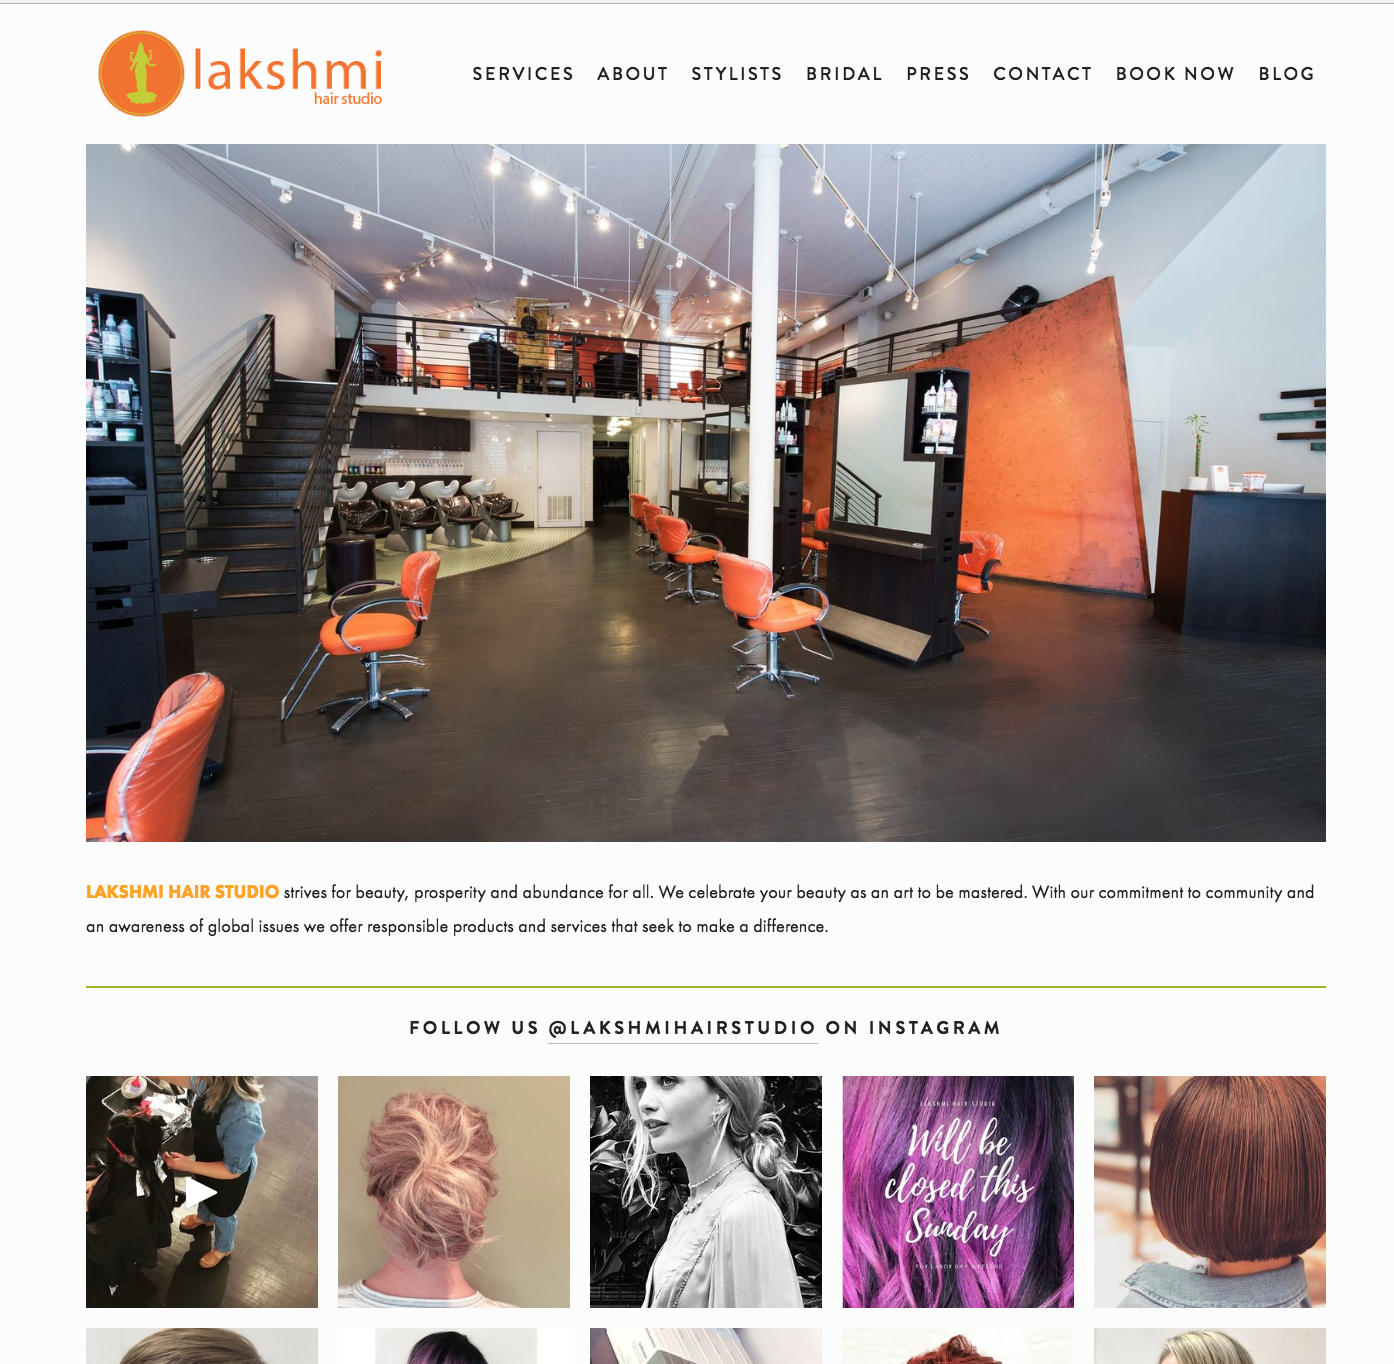 Lakshmi Hair Studio